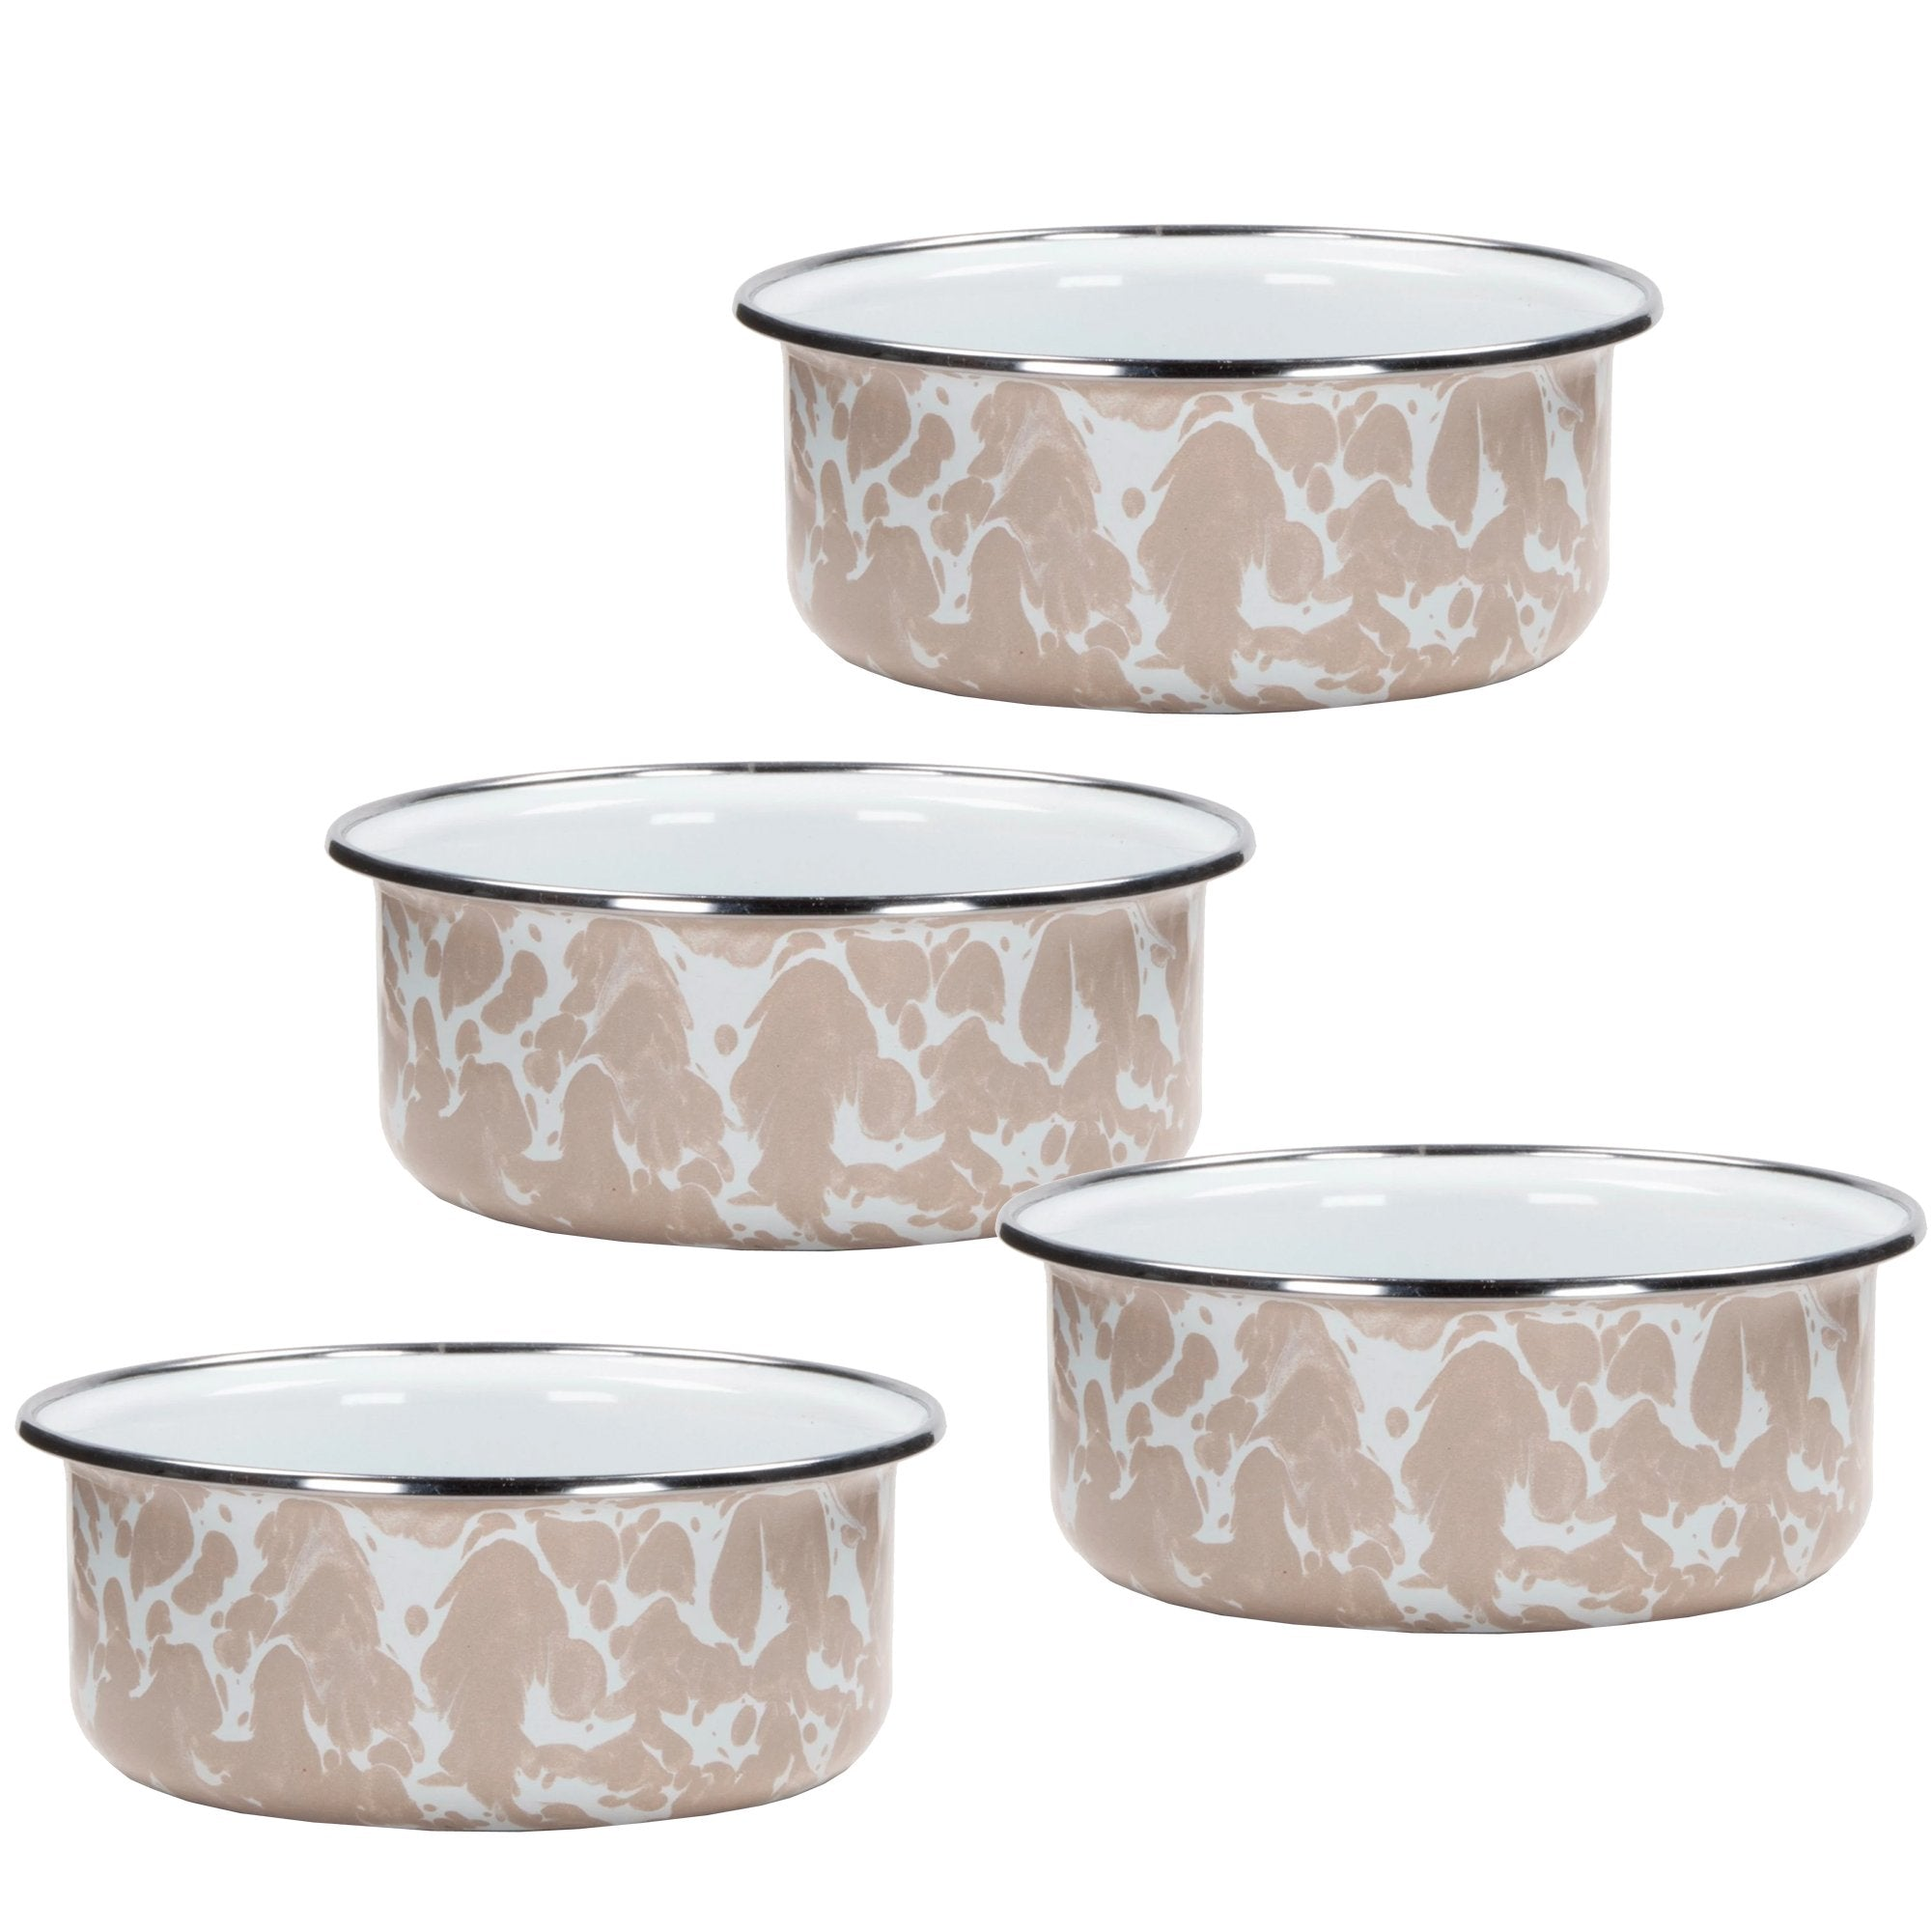 TP60S4 - Set of 4 Taupe Swirl Soup Bowls Product 1